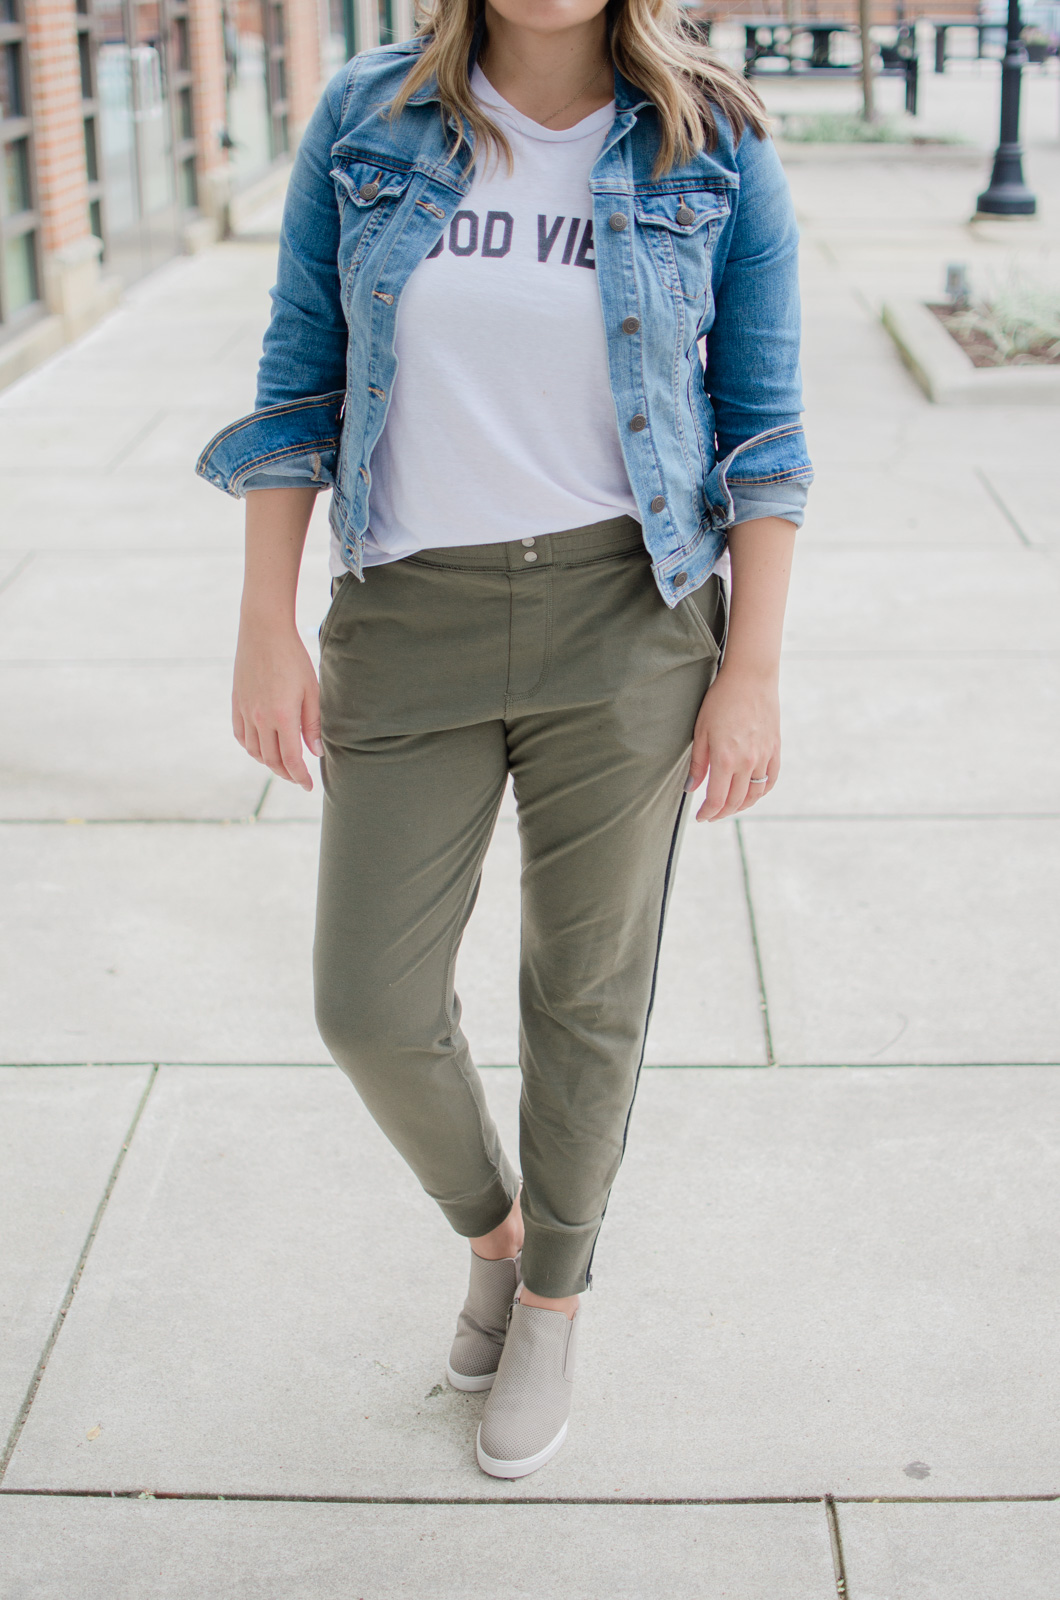 casual stripe jogger pants outfit - cute olive jogger pants outfit | bylaurenm.com